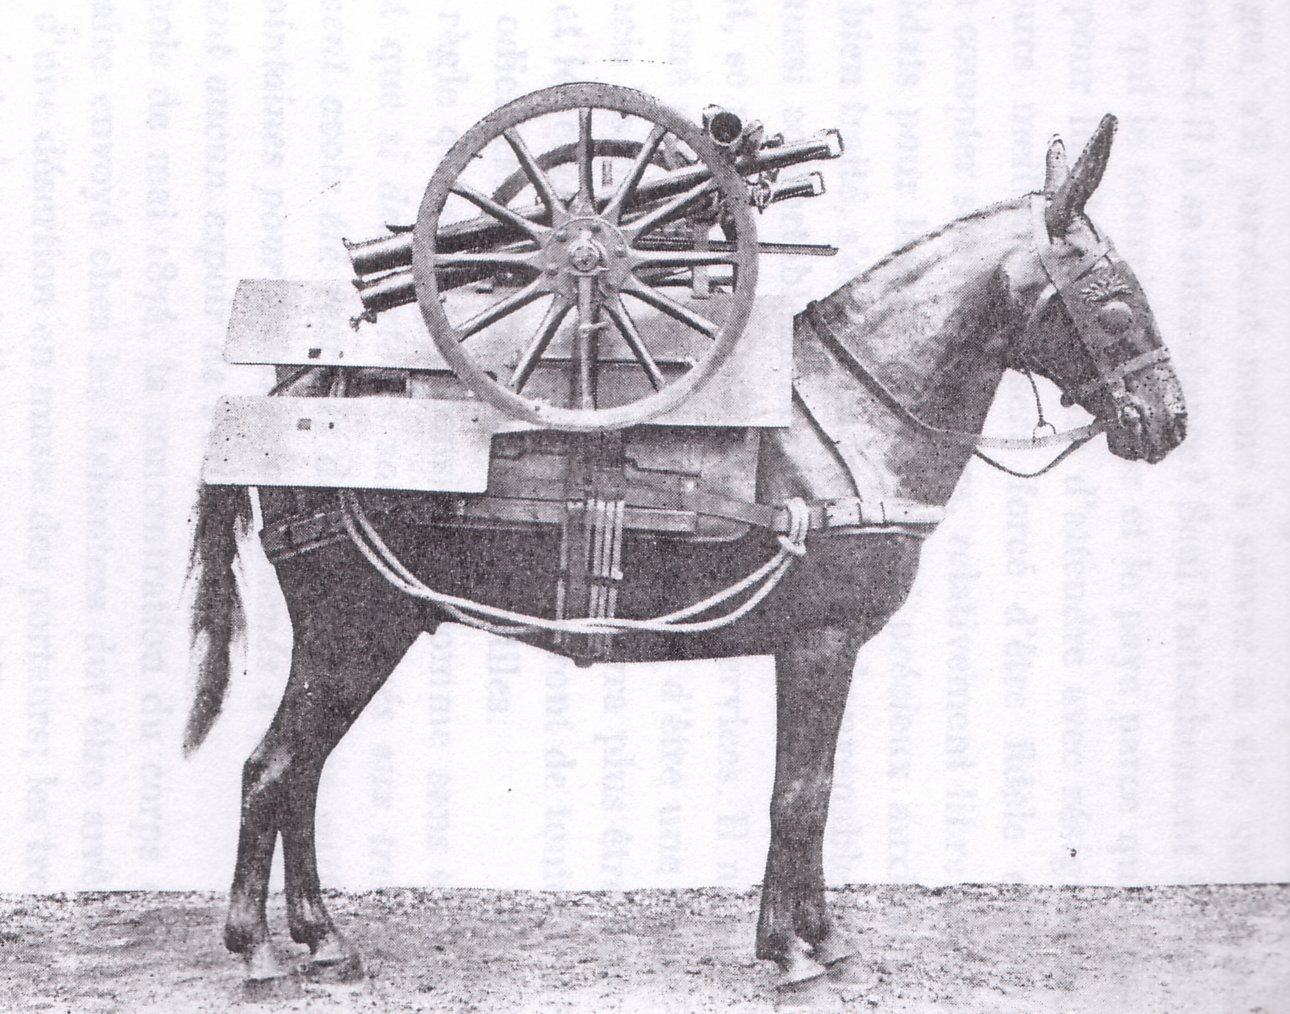 70mm Howitzer wheels and shield mounted on a pack mule